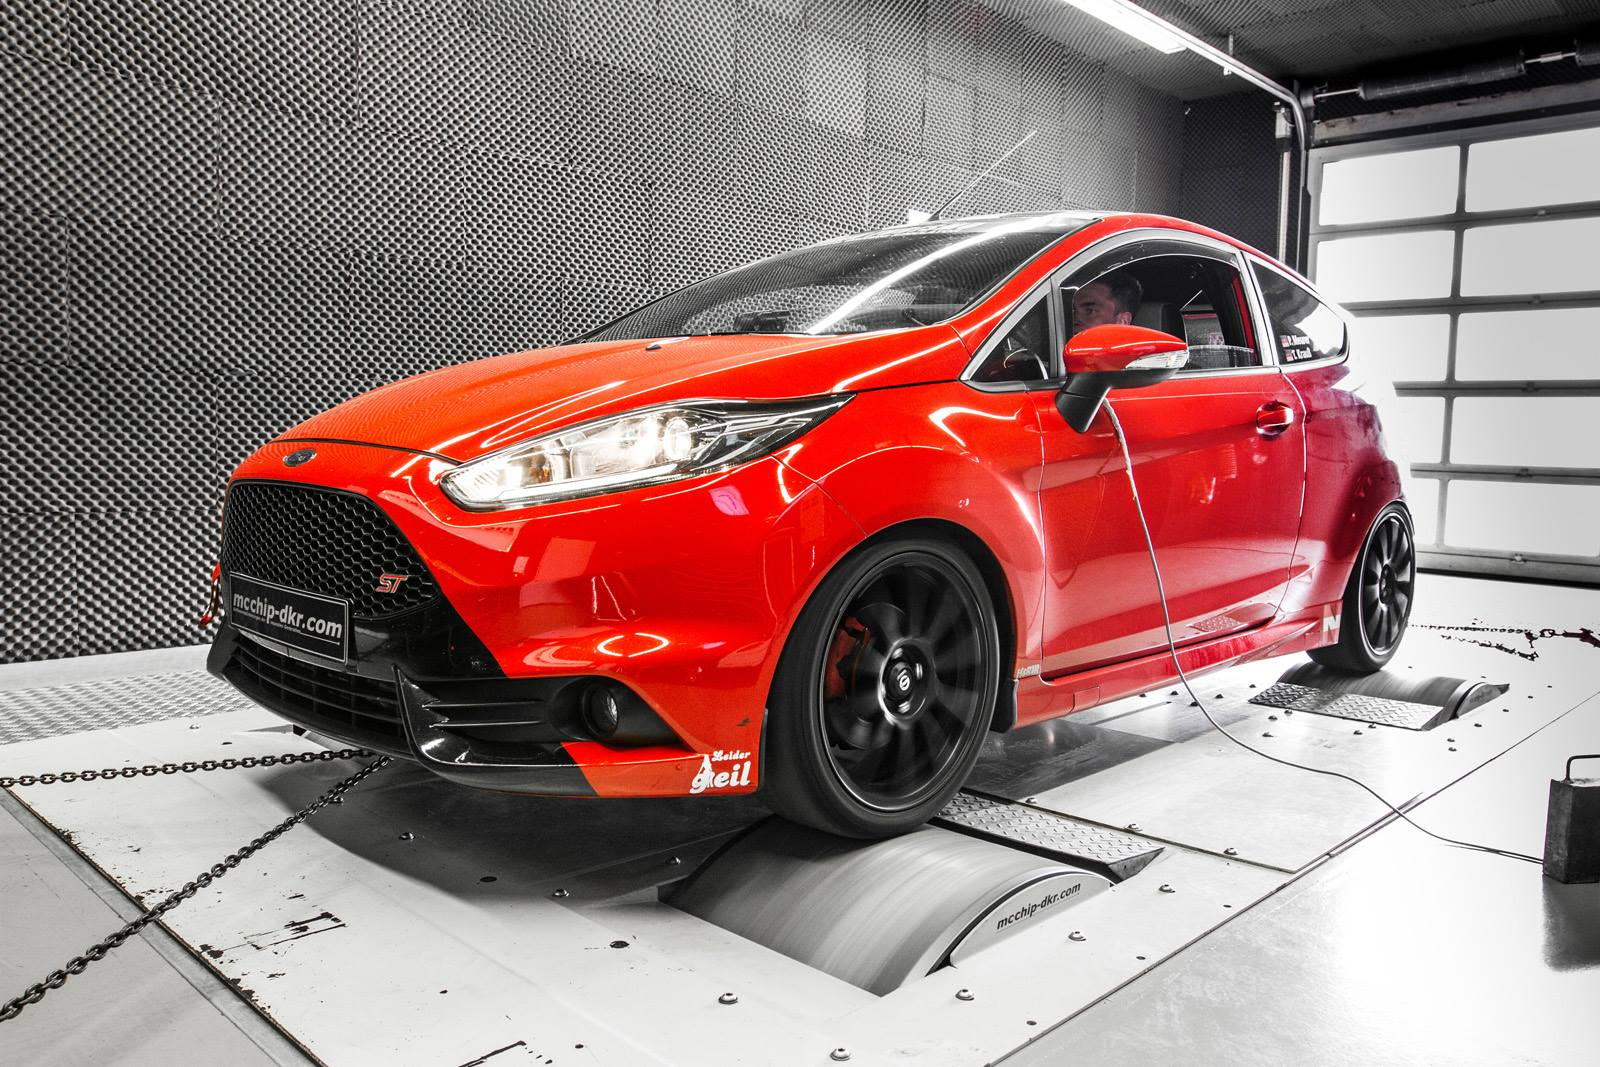 ford fiesta st 1 6 liter turbo tuned to 266 hp and 387 nm of torque autoevolution. Black Bedroom Furniture Sets. Home Design Ideas